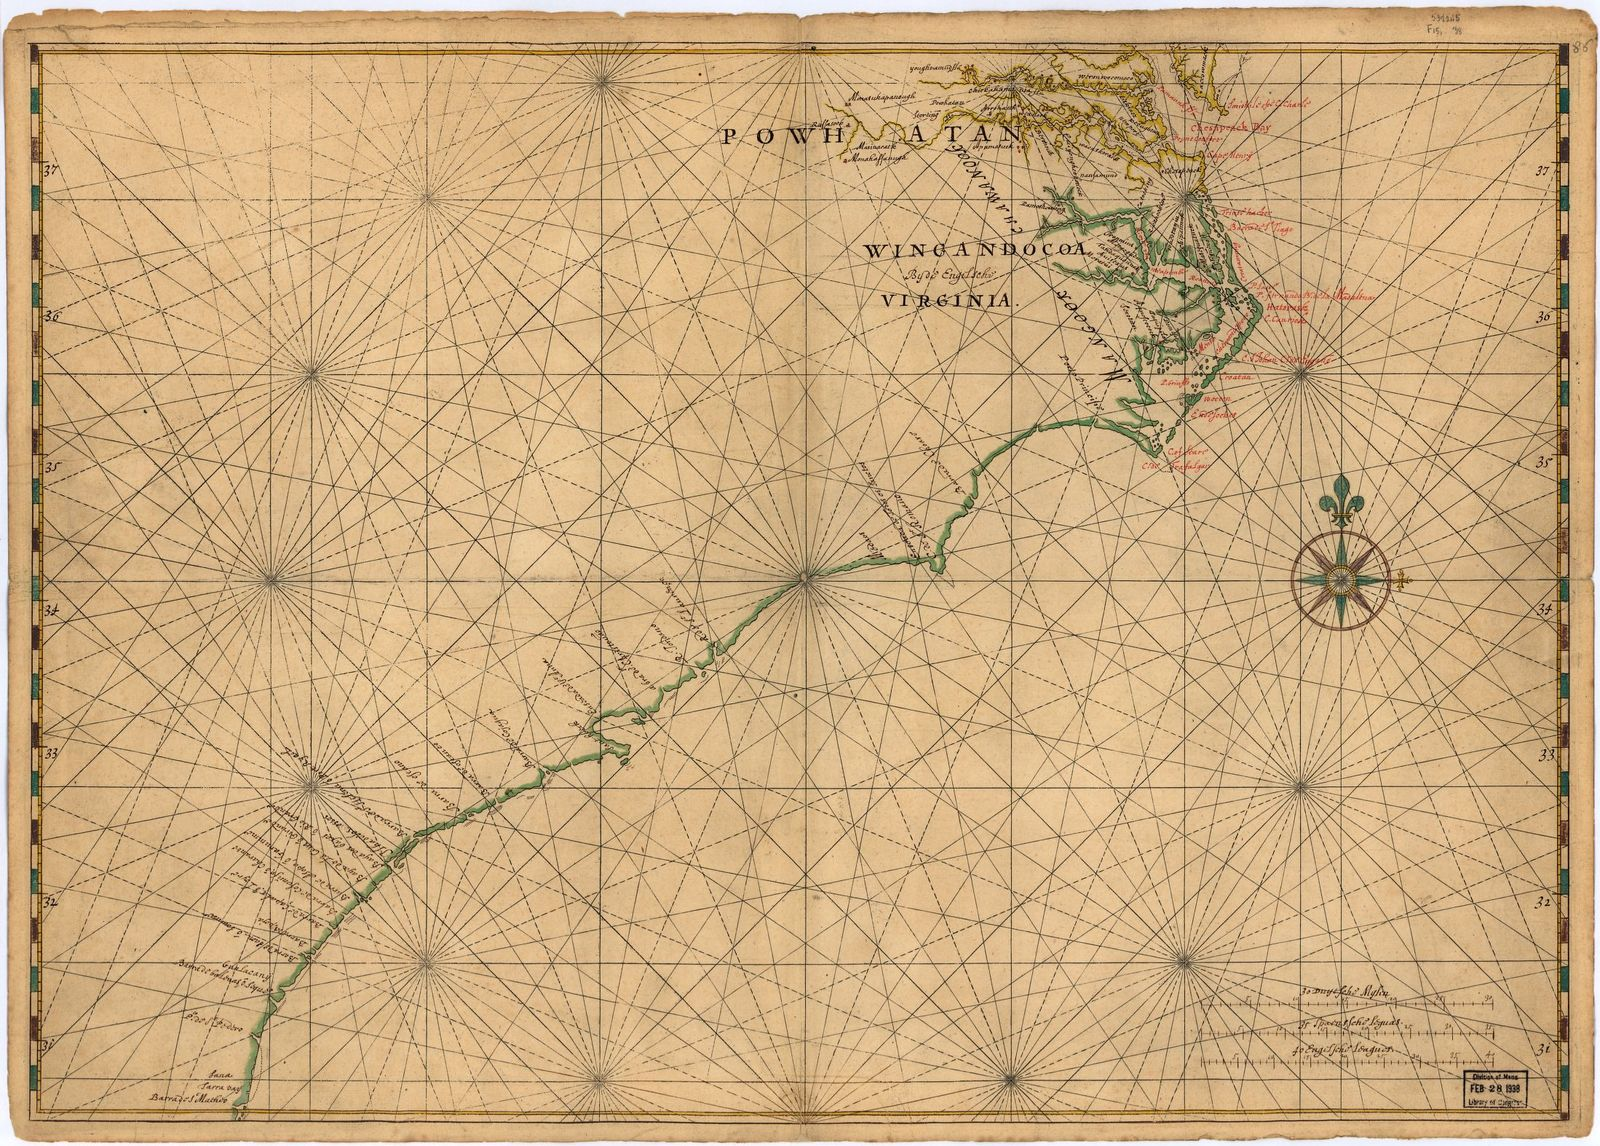 [Map of Atlantic Coast of North America from the Chesapeake Bay to Florida].